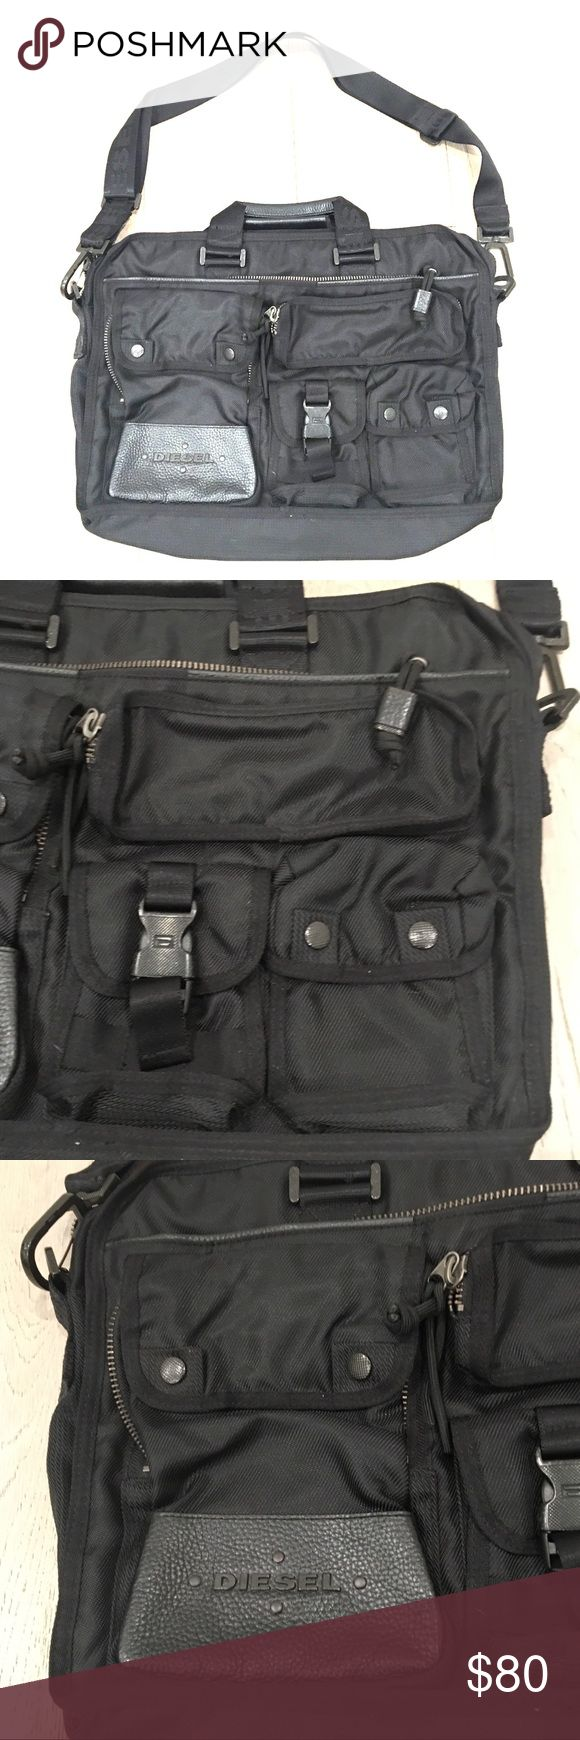 DIESEL Black Laptop Messenger Bag Preloved Diesel black messenger bag. Tons of compartments to keep you organized on the go. Padded compartment can fit a laptop or iPad. Only worn twice. EUC (see photos). Smoke-free home. Sorry no trades. Bundle and save 10%. Offers accepted. Diesel Bags Laptop Bags